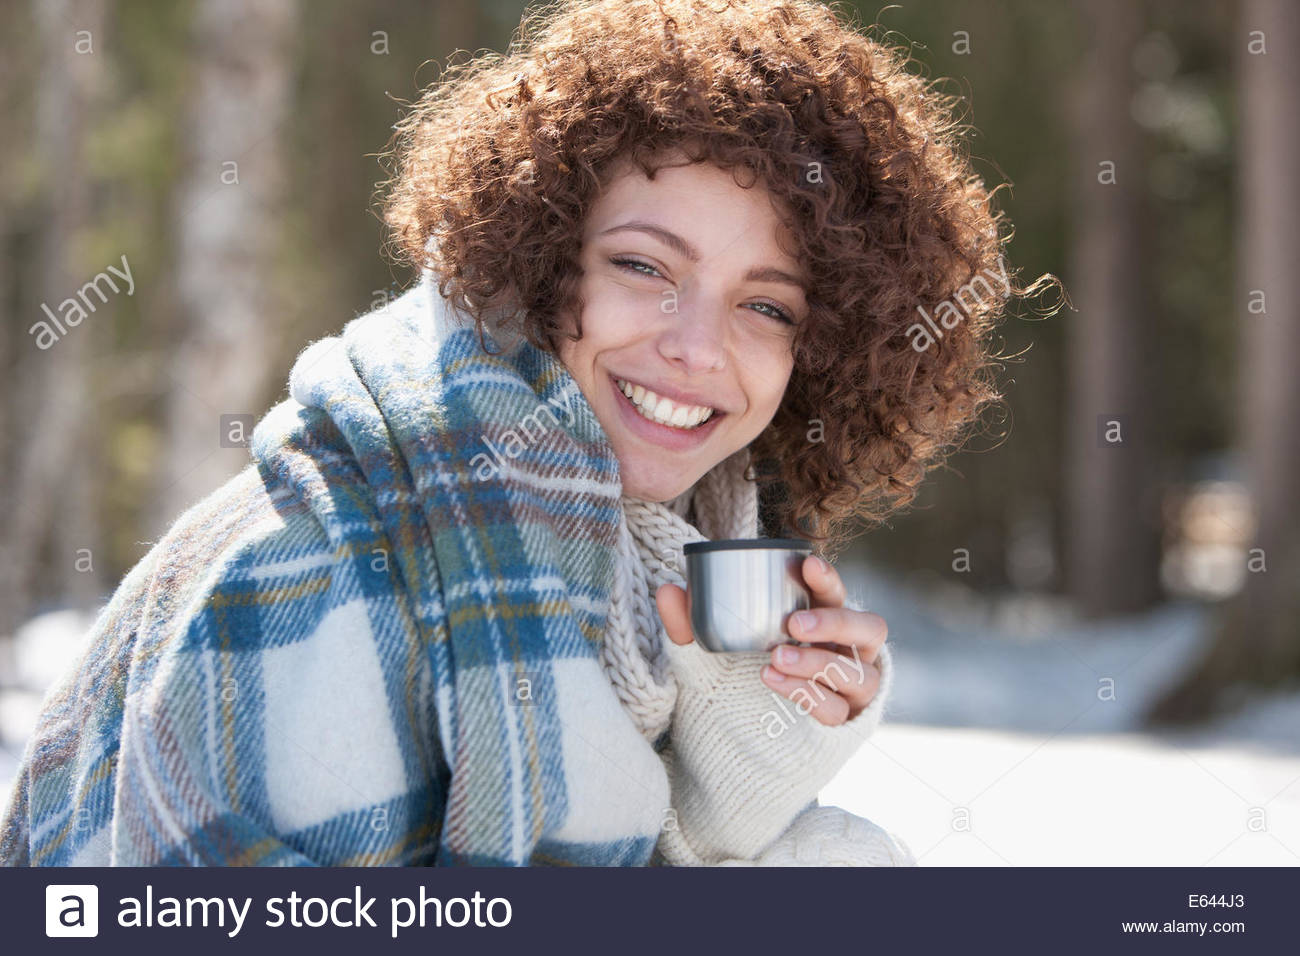 Woman drinking warm beverage outdoors, winter - Stock Image